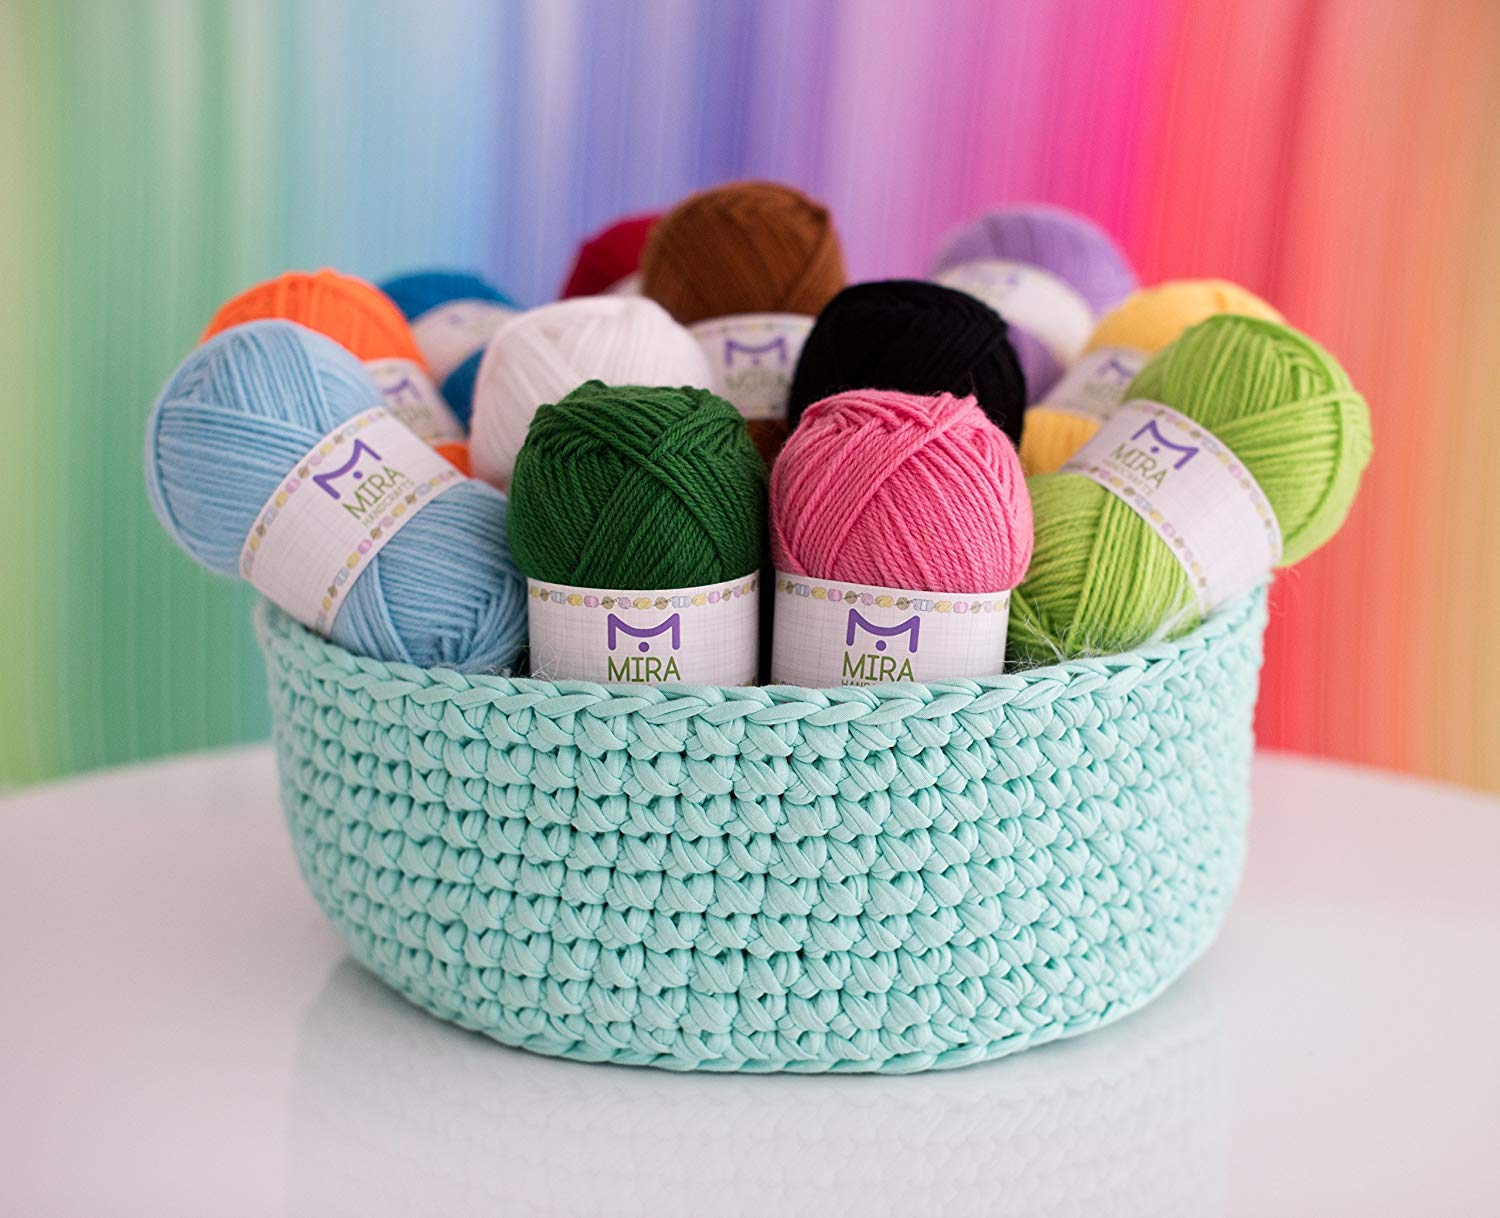 Mira Handcrafts Acrylic 1.76 Ounce(50g) Each Large Yarn Skeins - 12 Multicolor Knitting and Crochet Yarn Bulk - Starter Kit for Colorful Craft - 7 Ebooks with Yarn Patterns by Mira HandCrafts (Image #6)